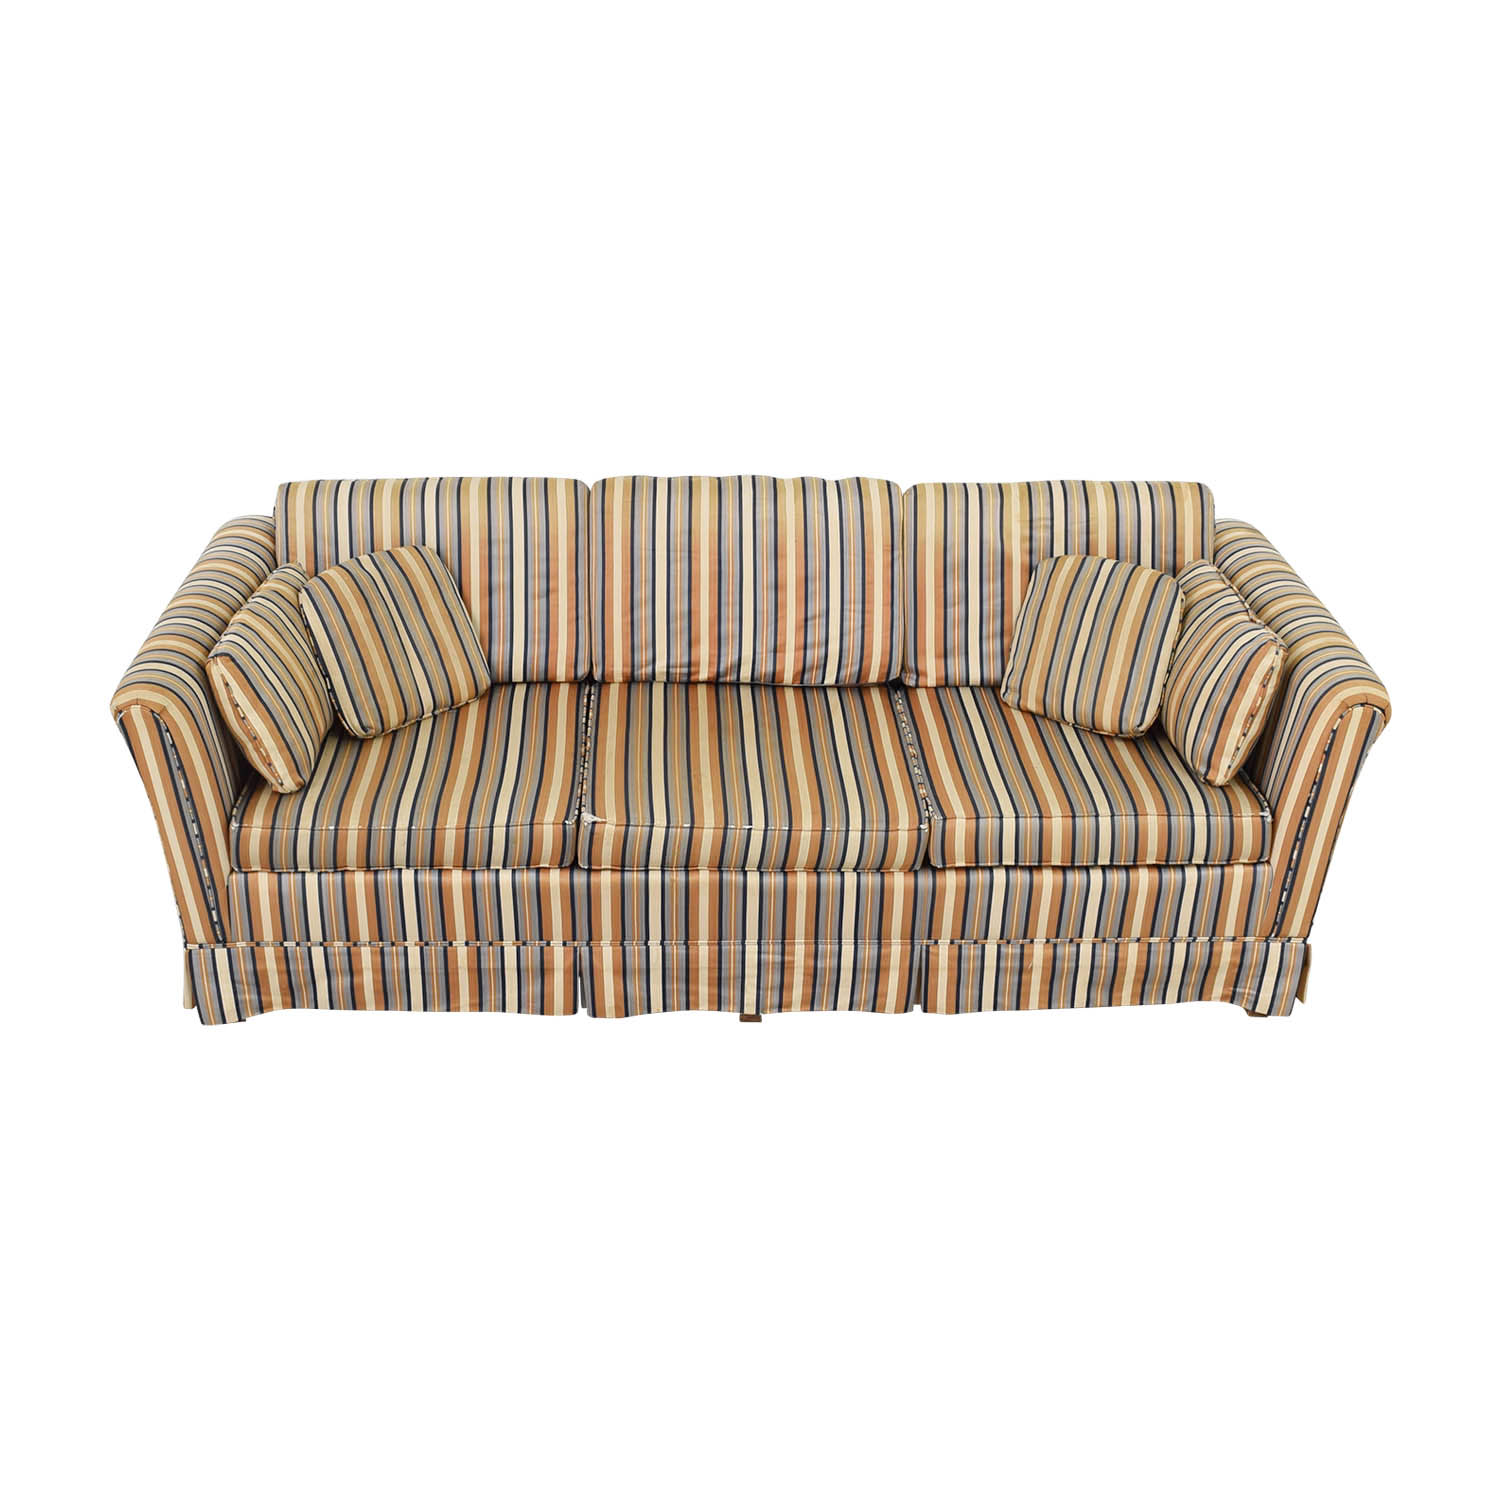 Striped Three-Seater Sofa Classic Sofas